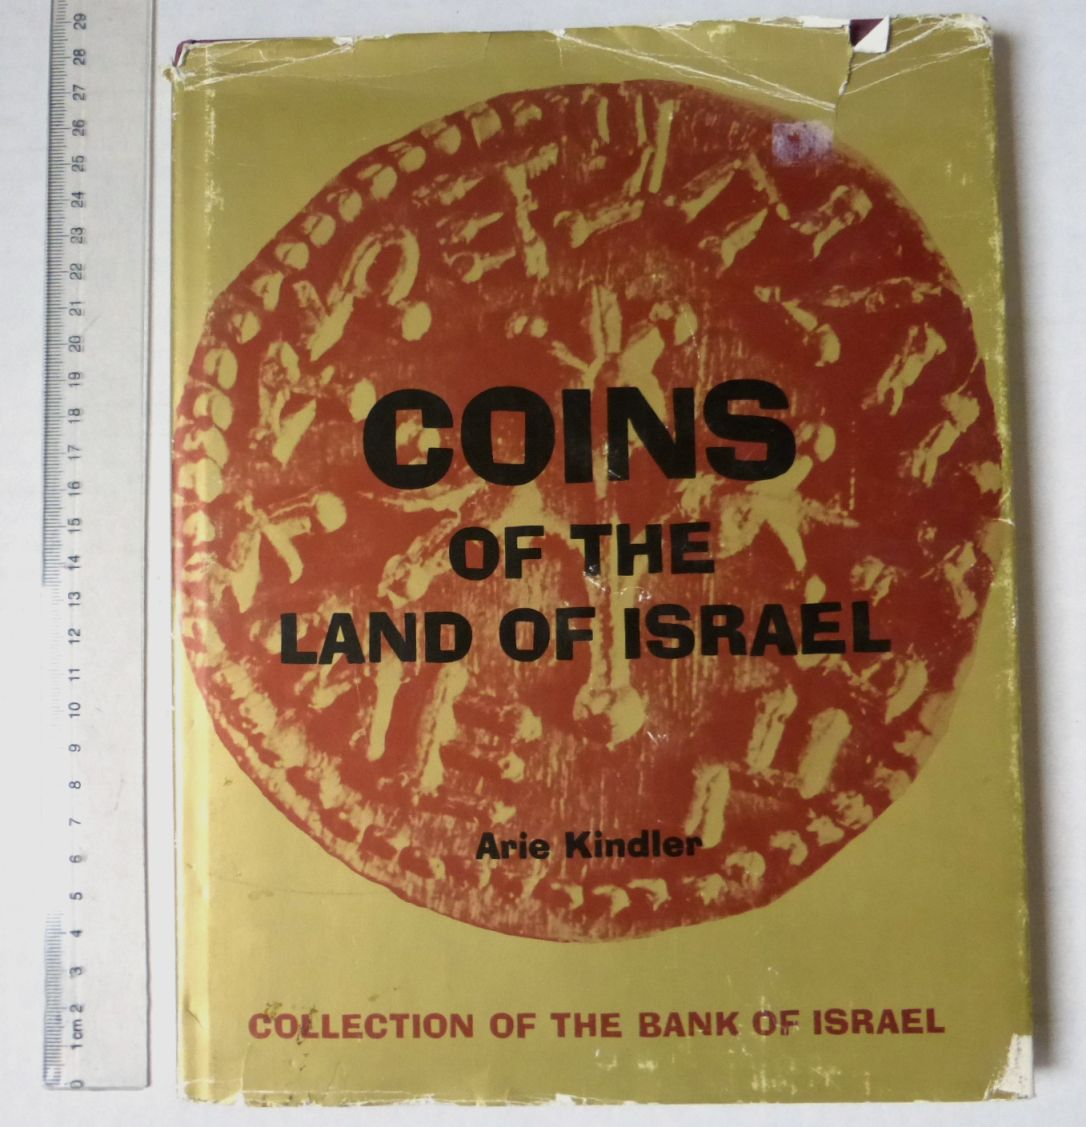 Coins of the Land of Israel Collection of the Bank of Israel, Keter publ. Jlm 1974